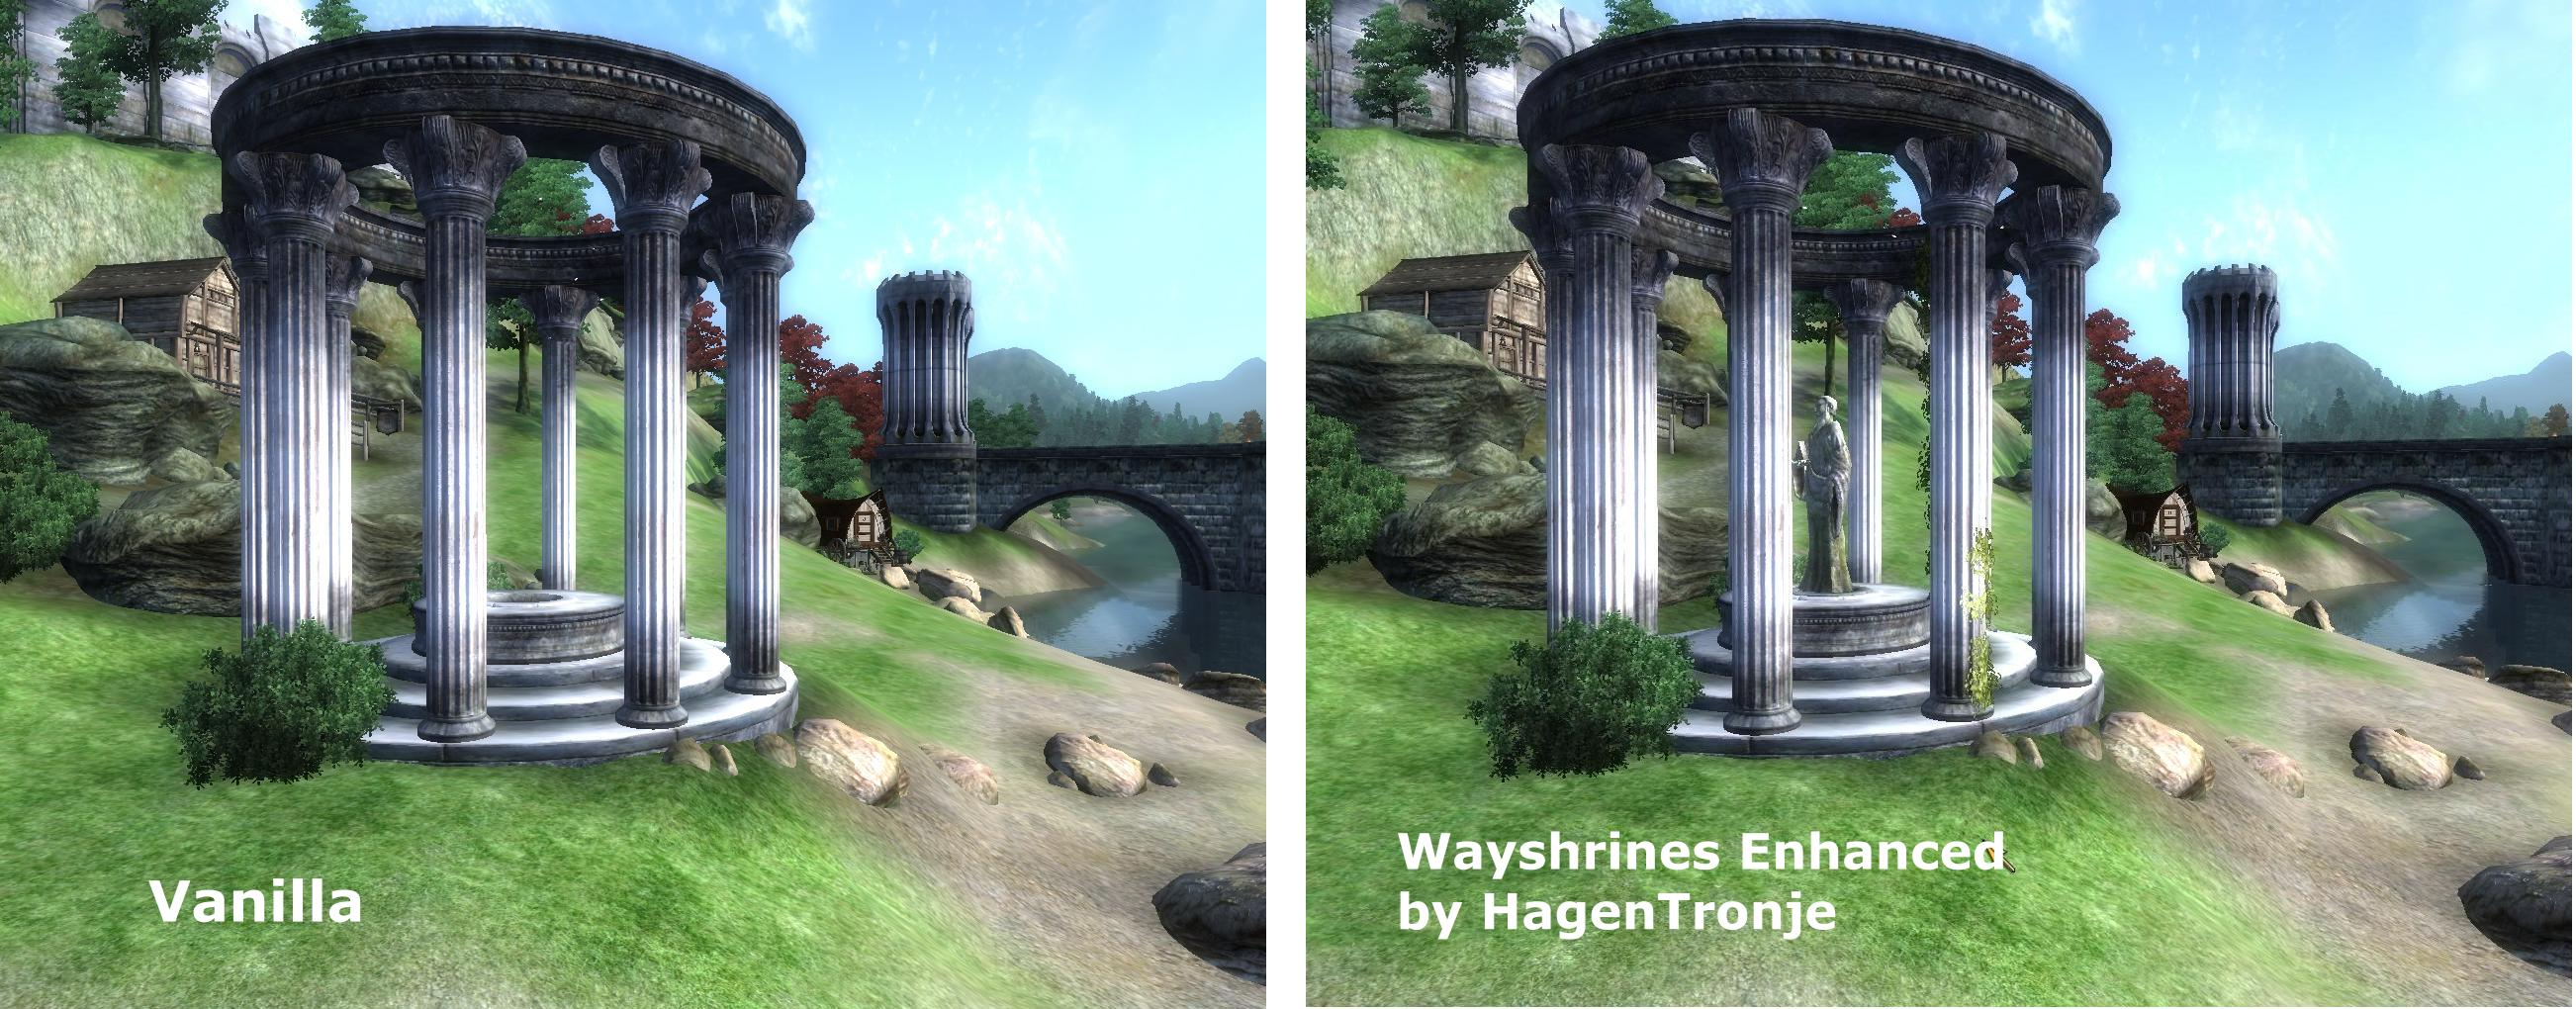 Wayshrines Improved - Julianos